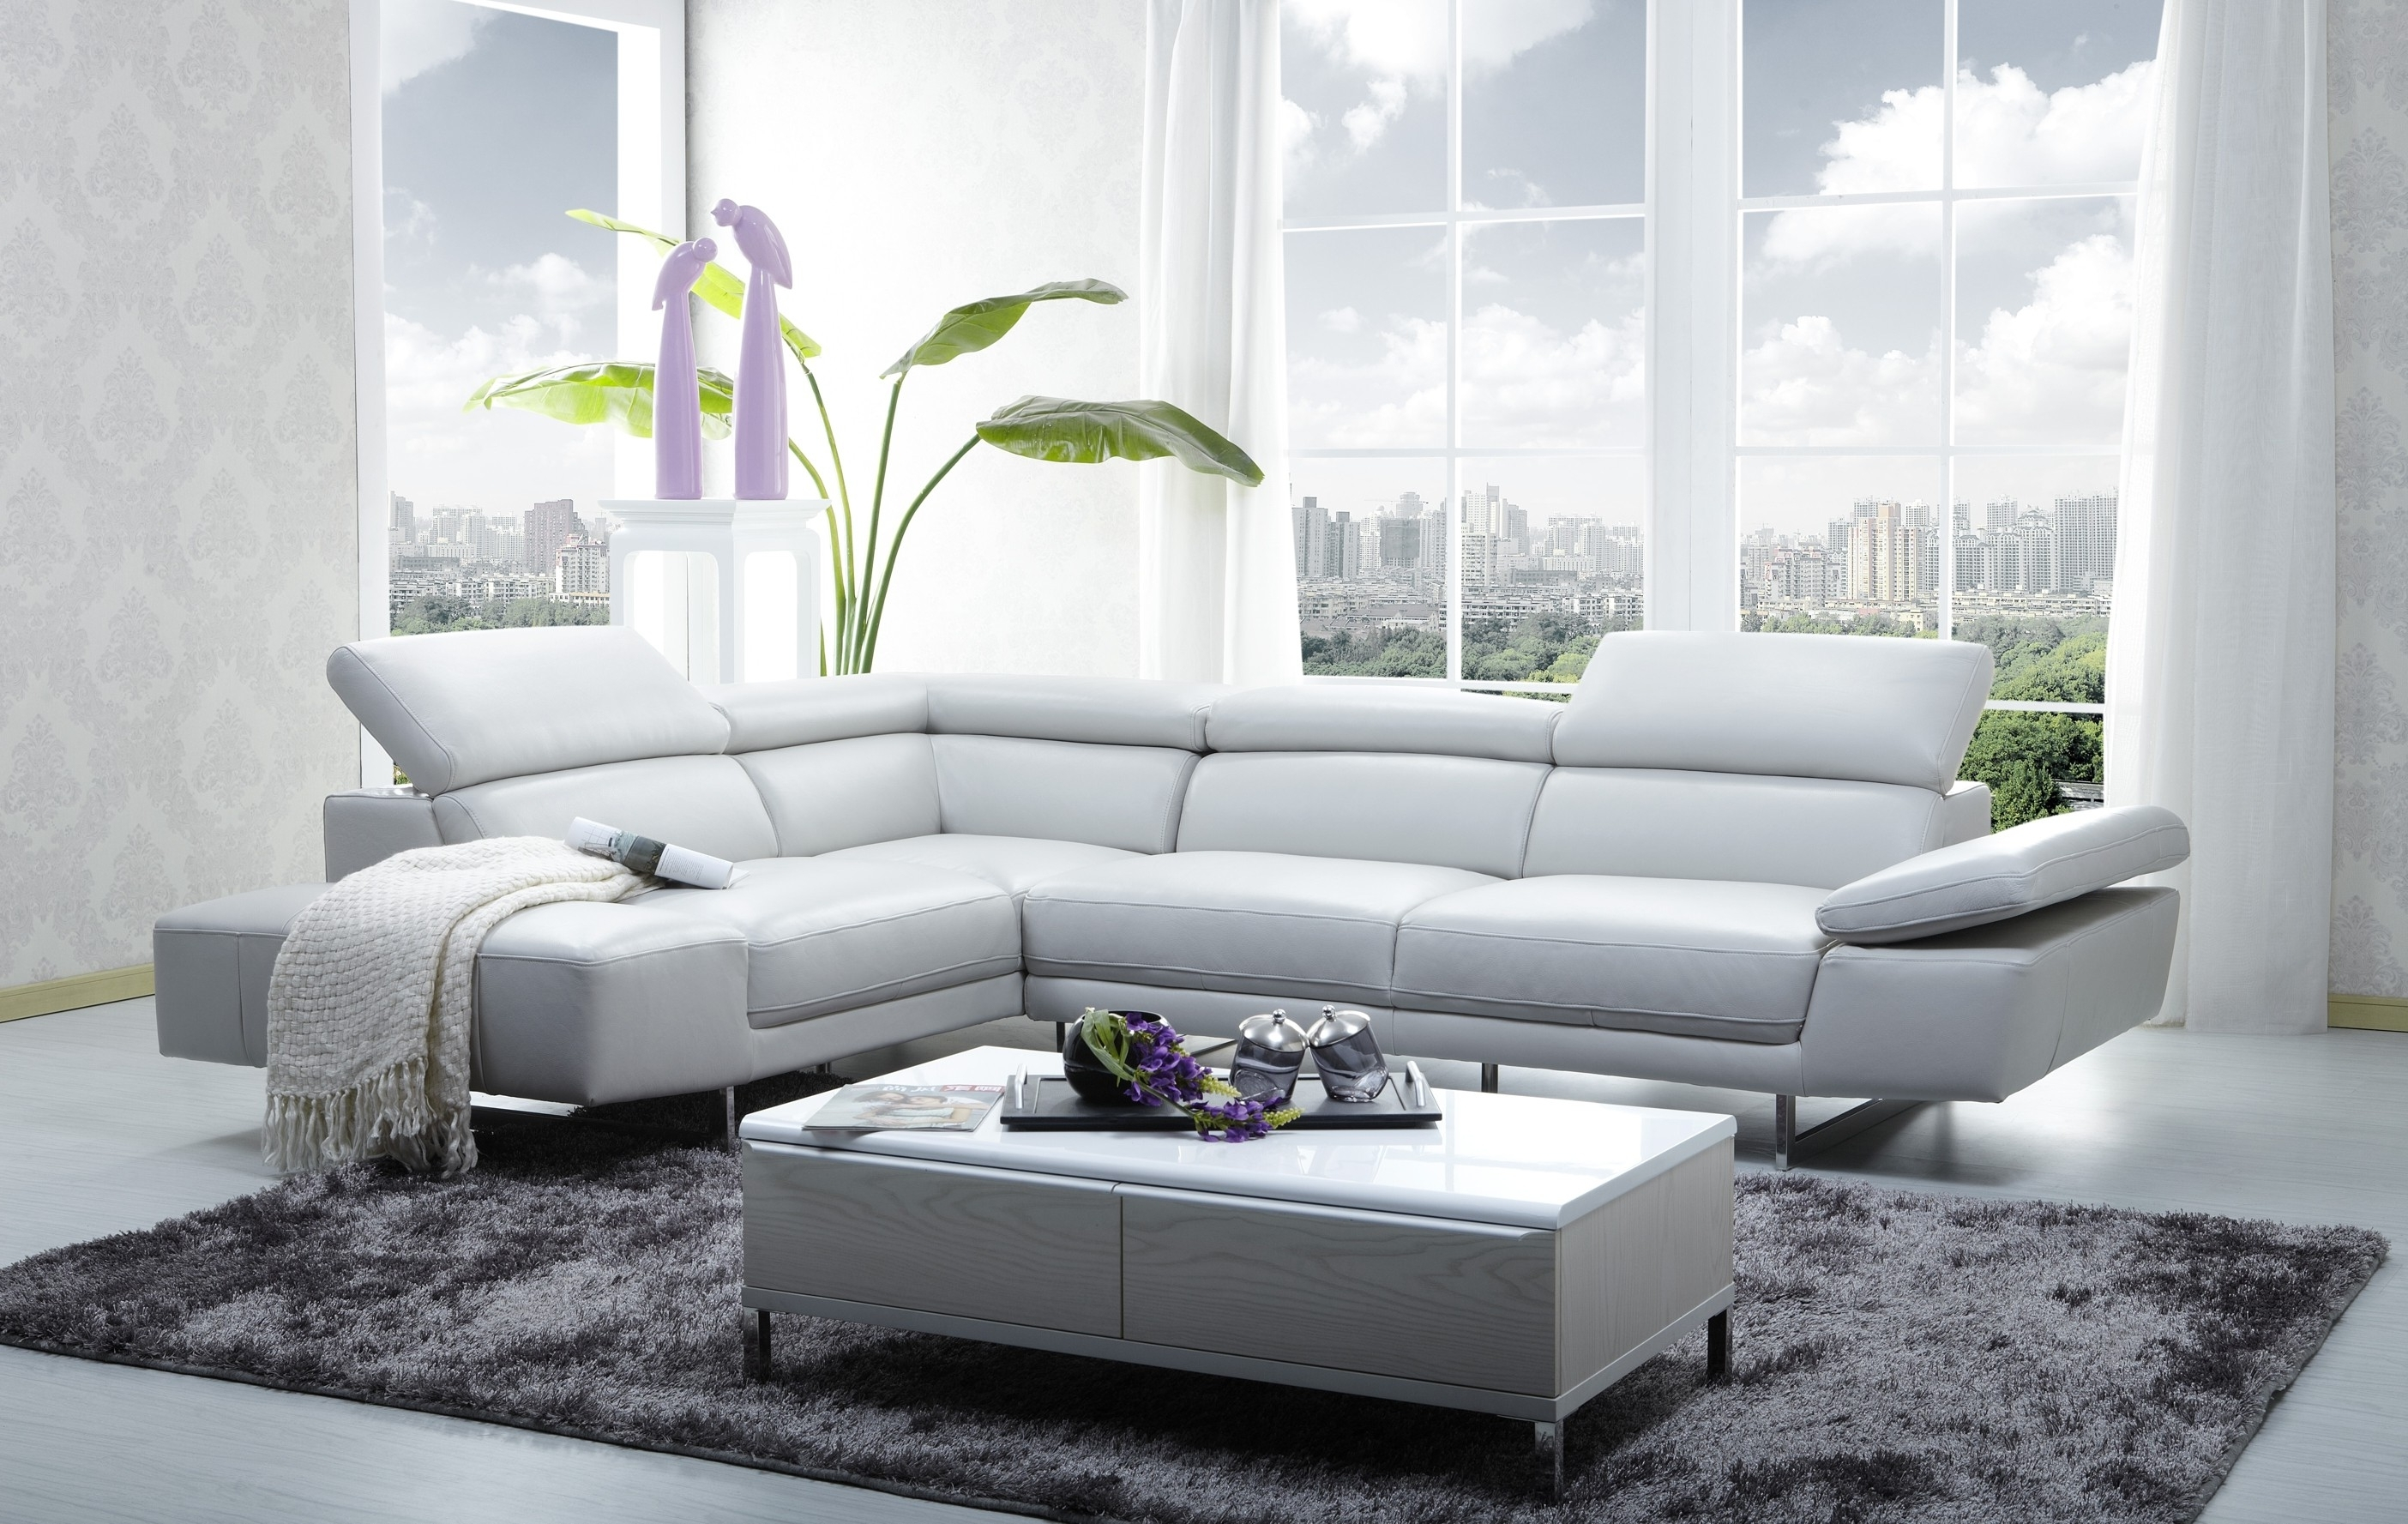 Sectional Sofas In Stock In Widely Used 1717 Italian Leather Modern Sectional Sofa (View 15 of 20)